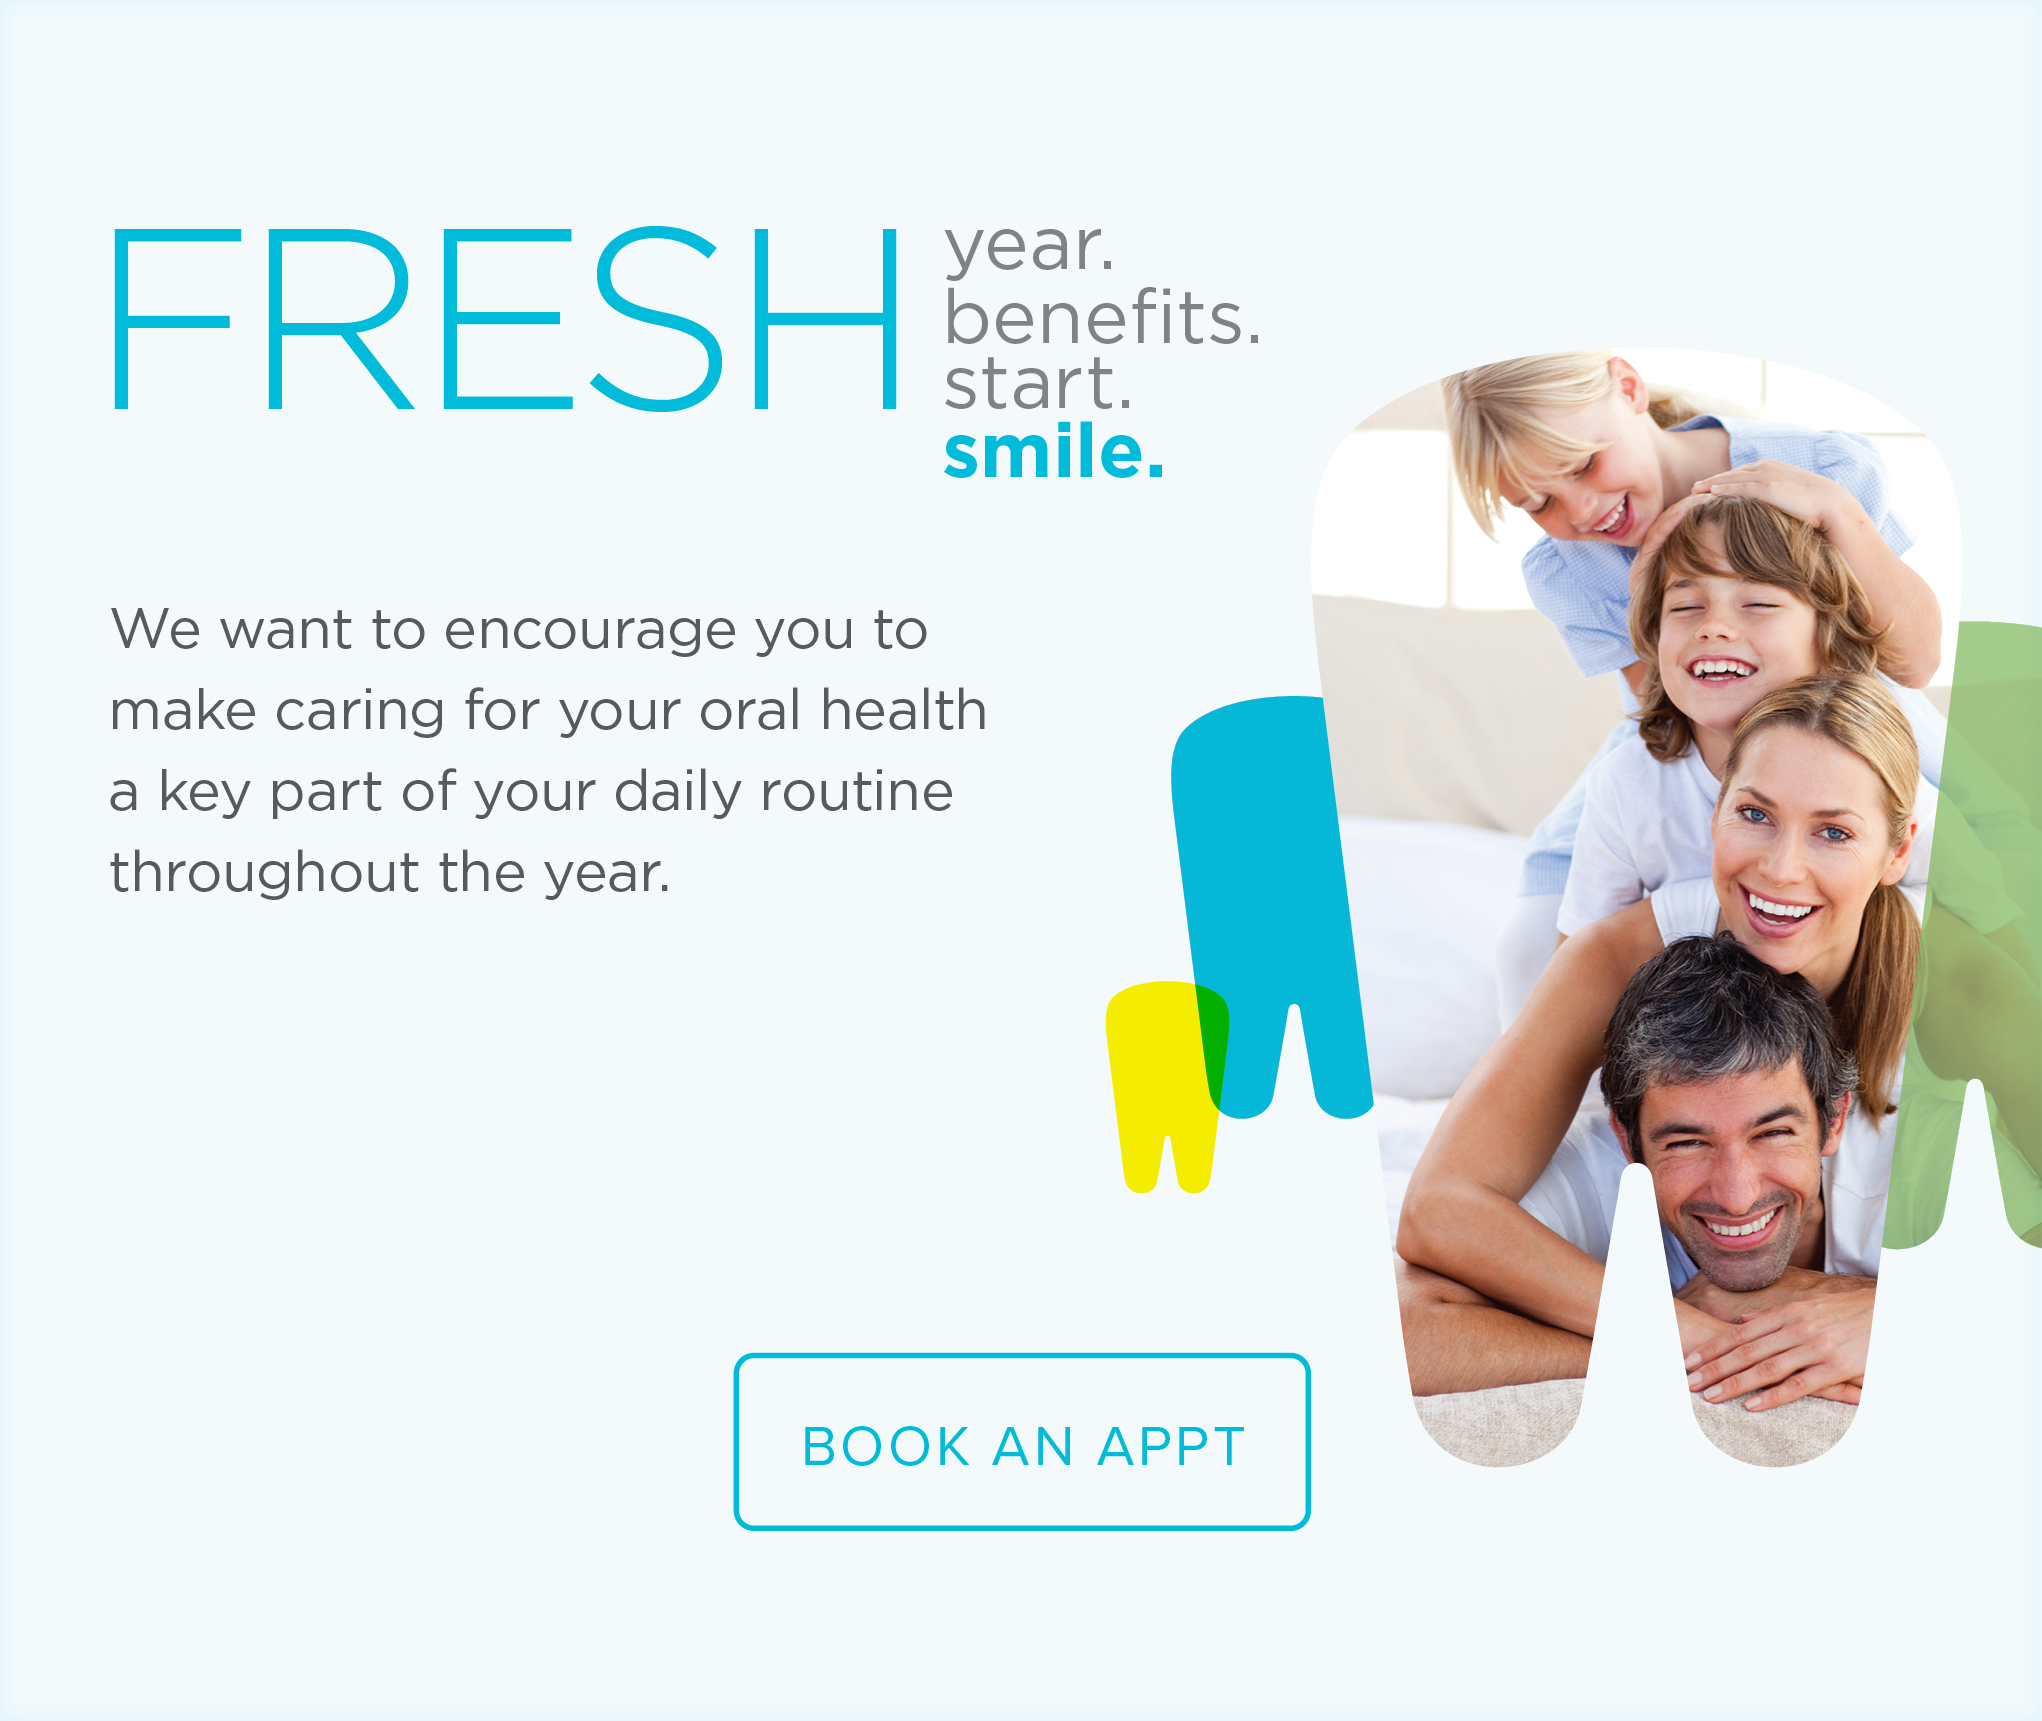 Murfreesboro Modern Dentistry - Make the Most of Your Benefits